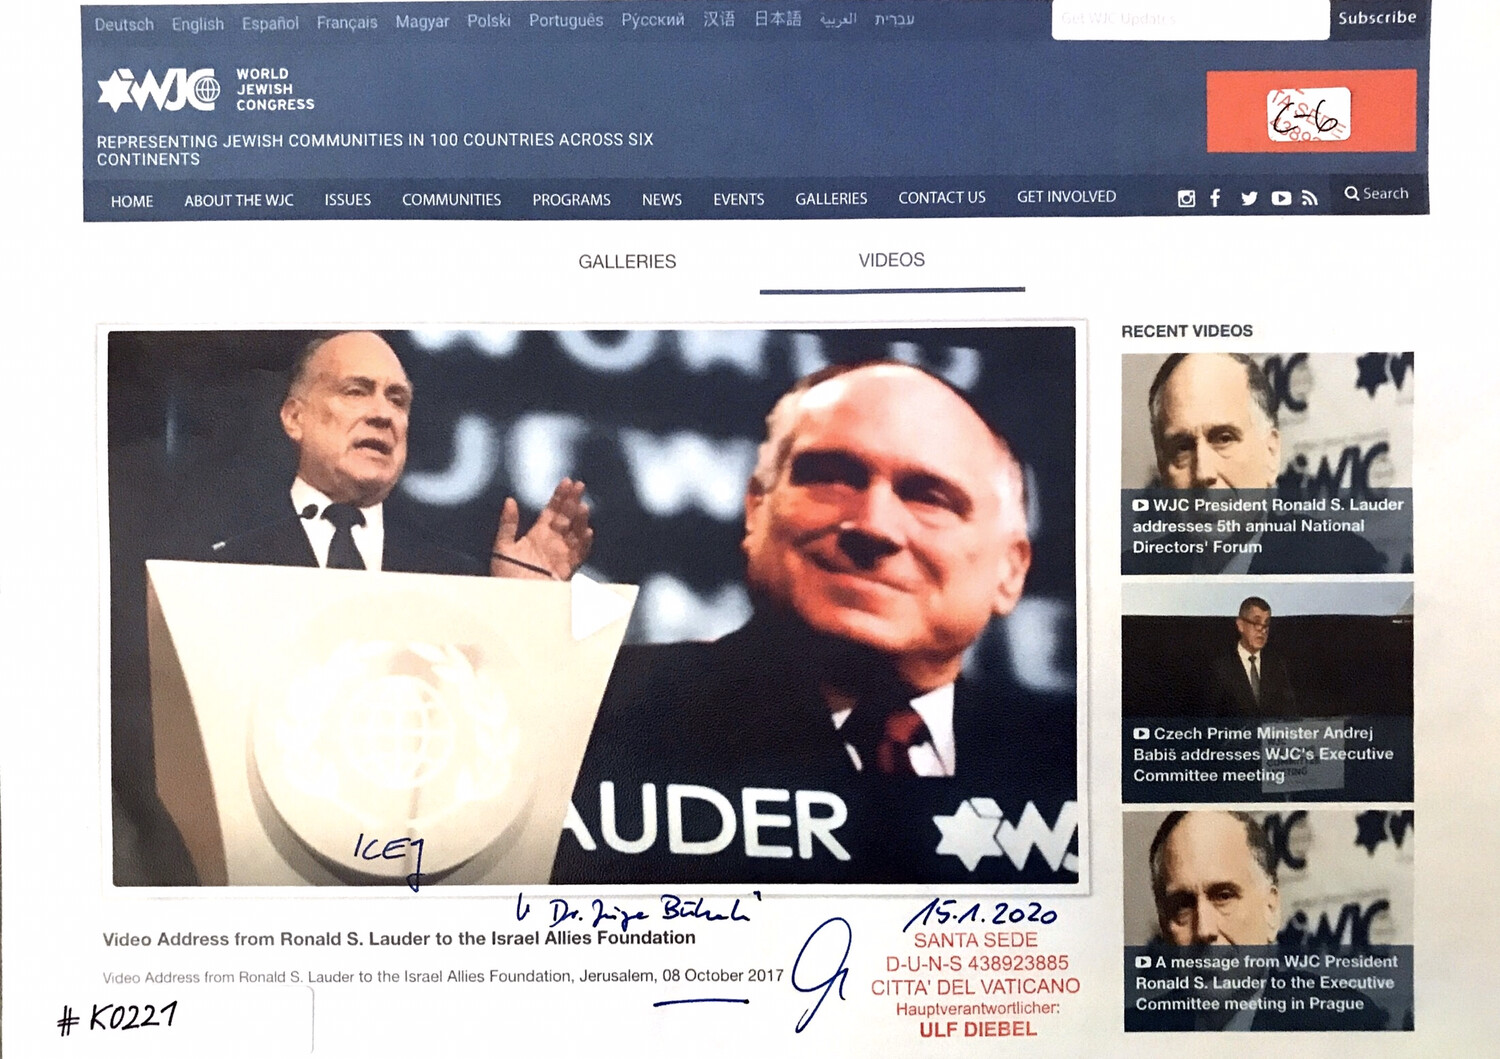 #K0221 l World Jewish Congress - Video Address from Ronald S. Lauder to the Israel Allies Foundation